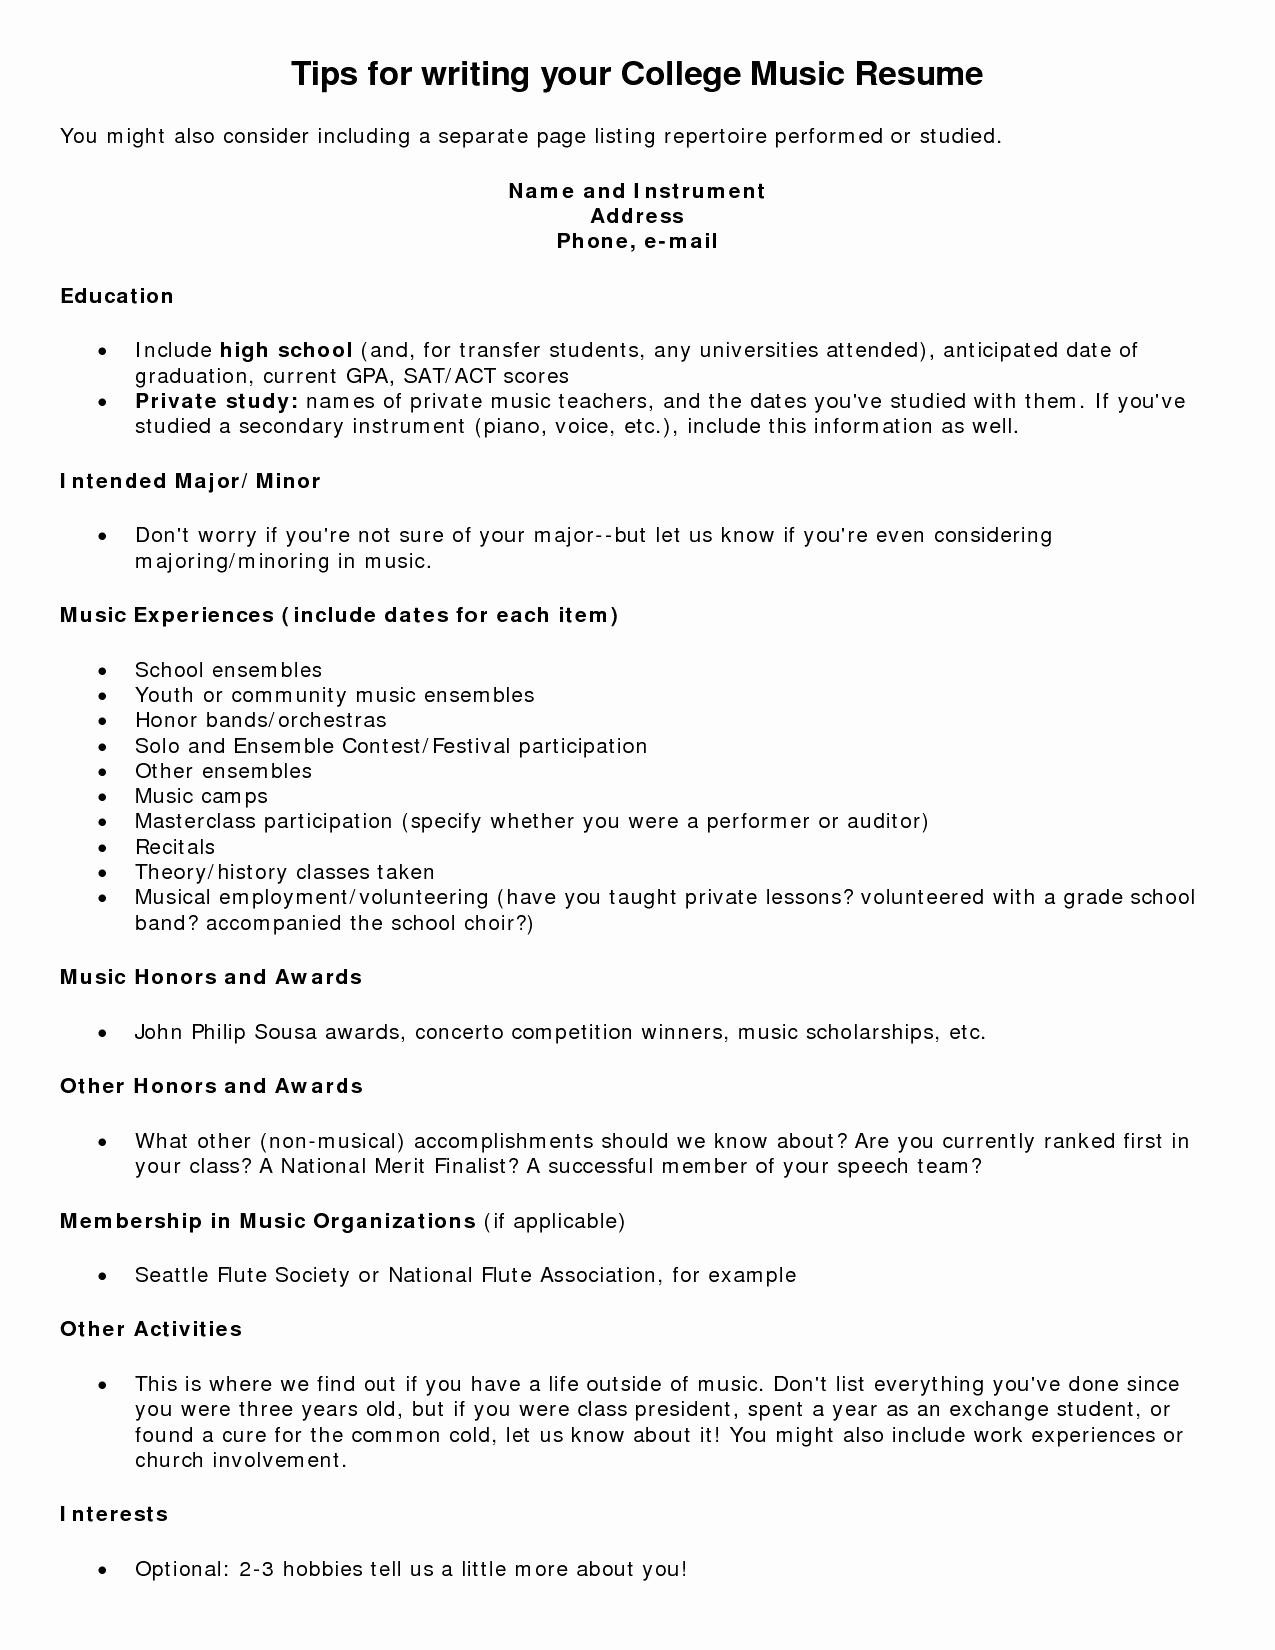 Resume for Transfer Student - Best format for Resumes New Student Cover Letter Awesome Lovely